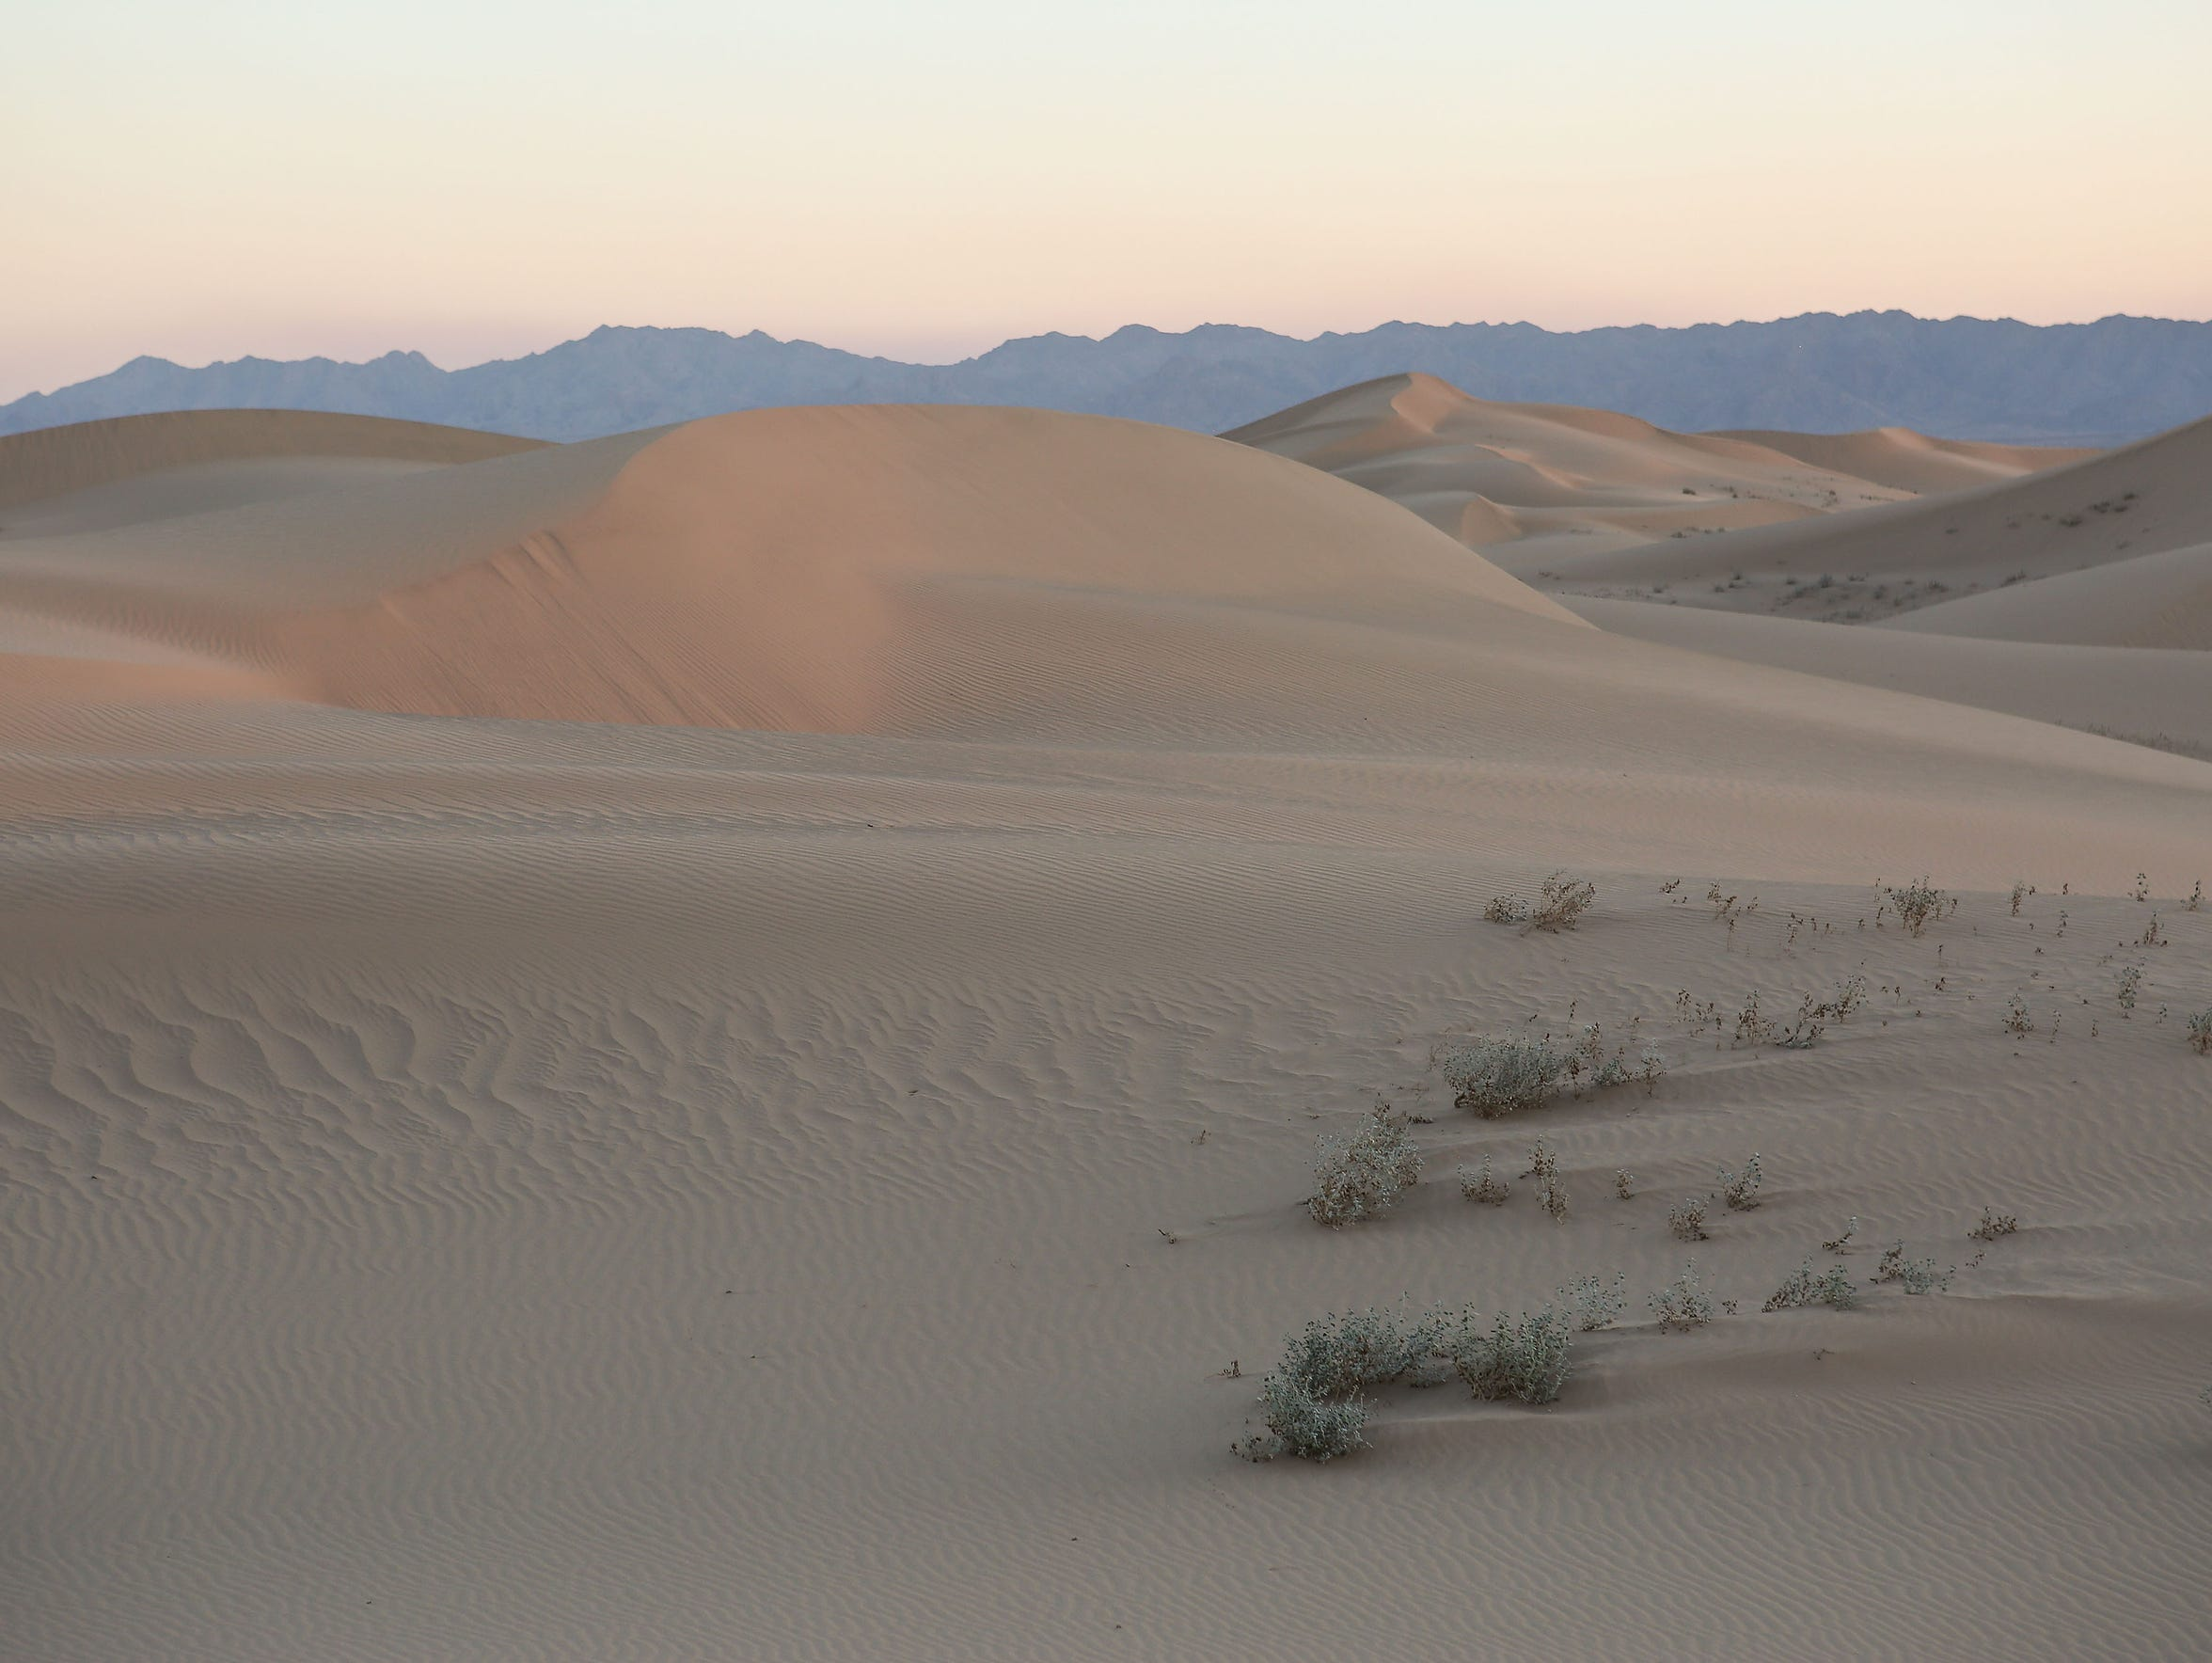 The Cadiz Dunes Wilderness was included in Mojave Trails